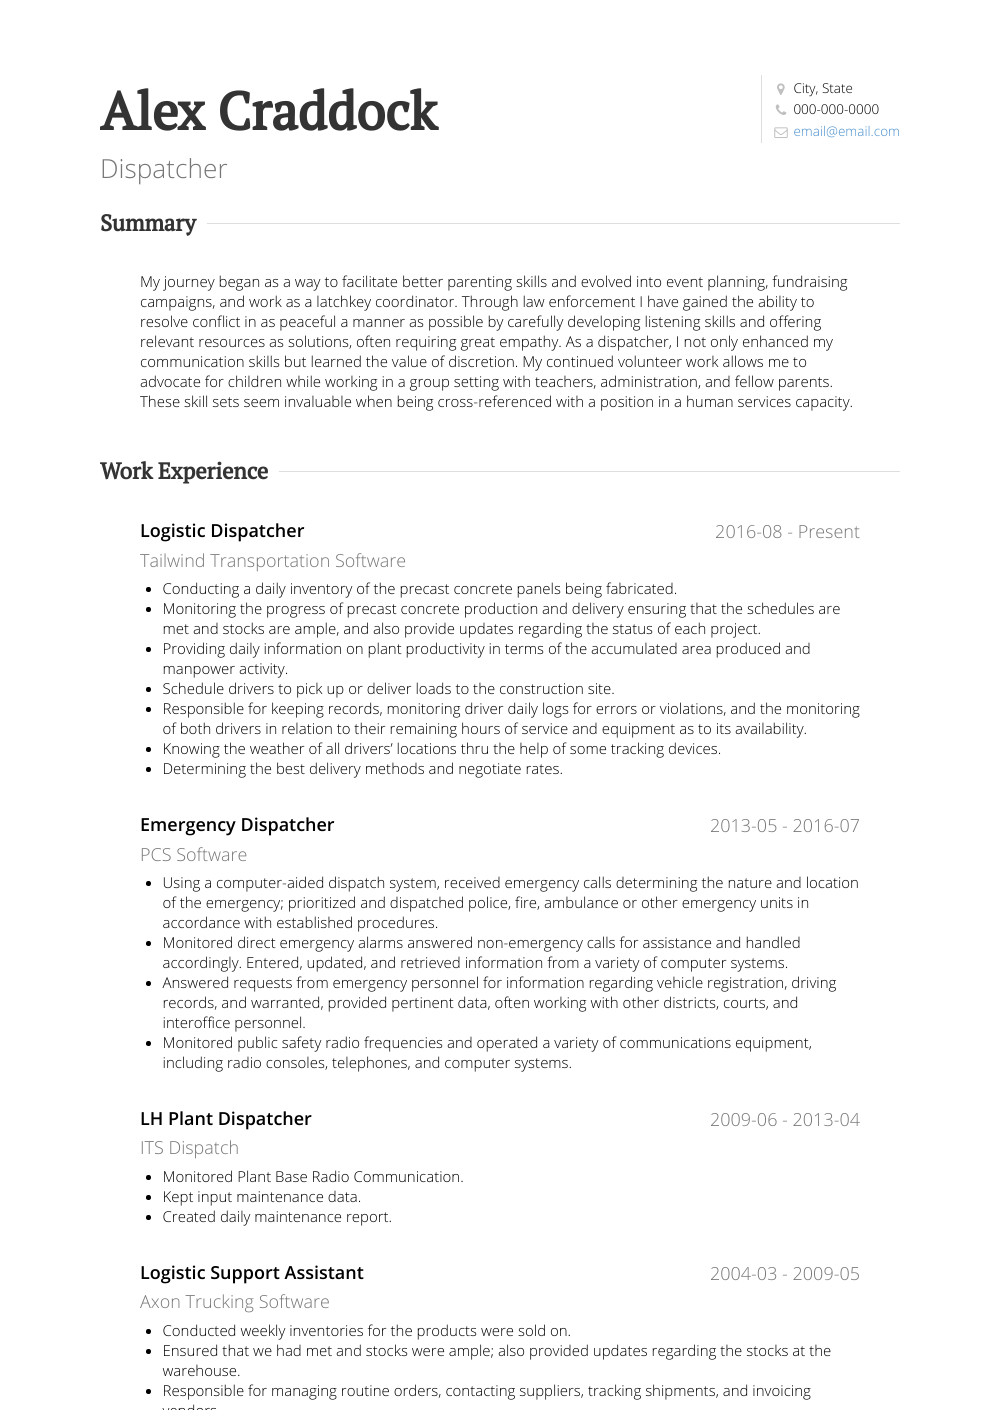 Dispatcher Resume Sample and Template